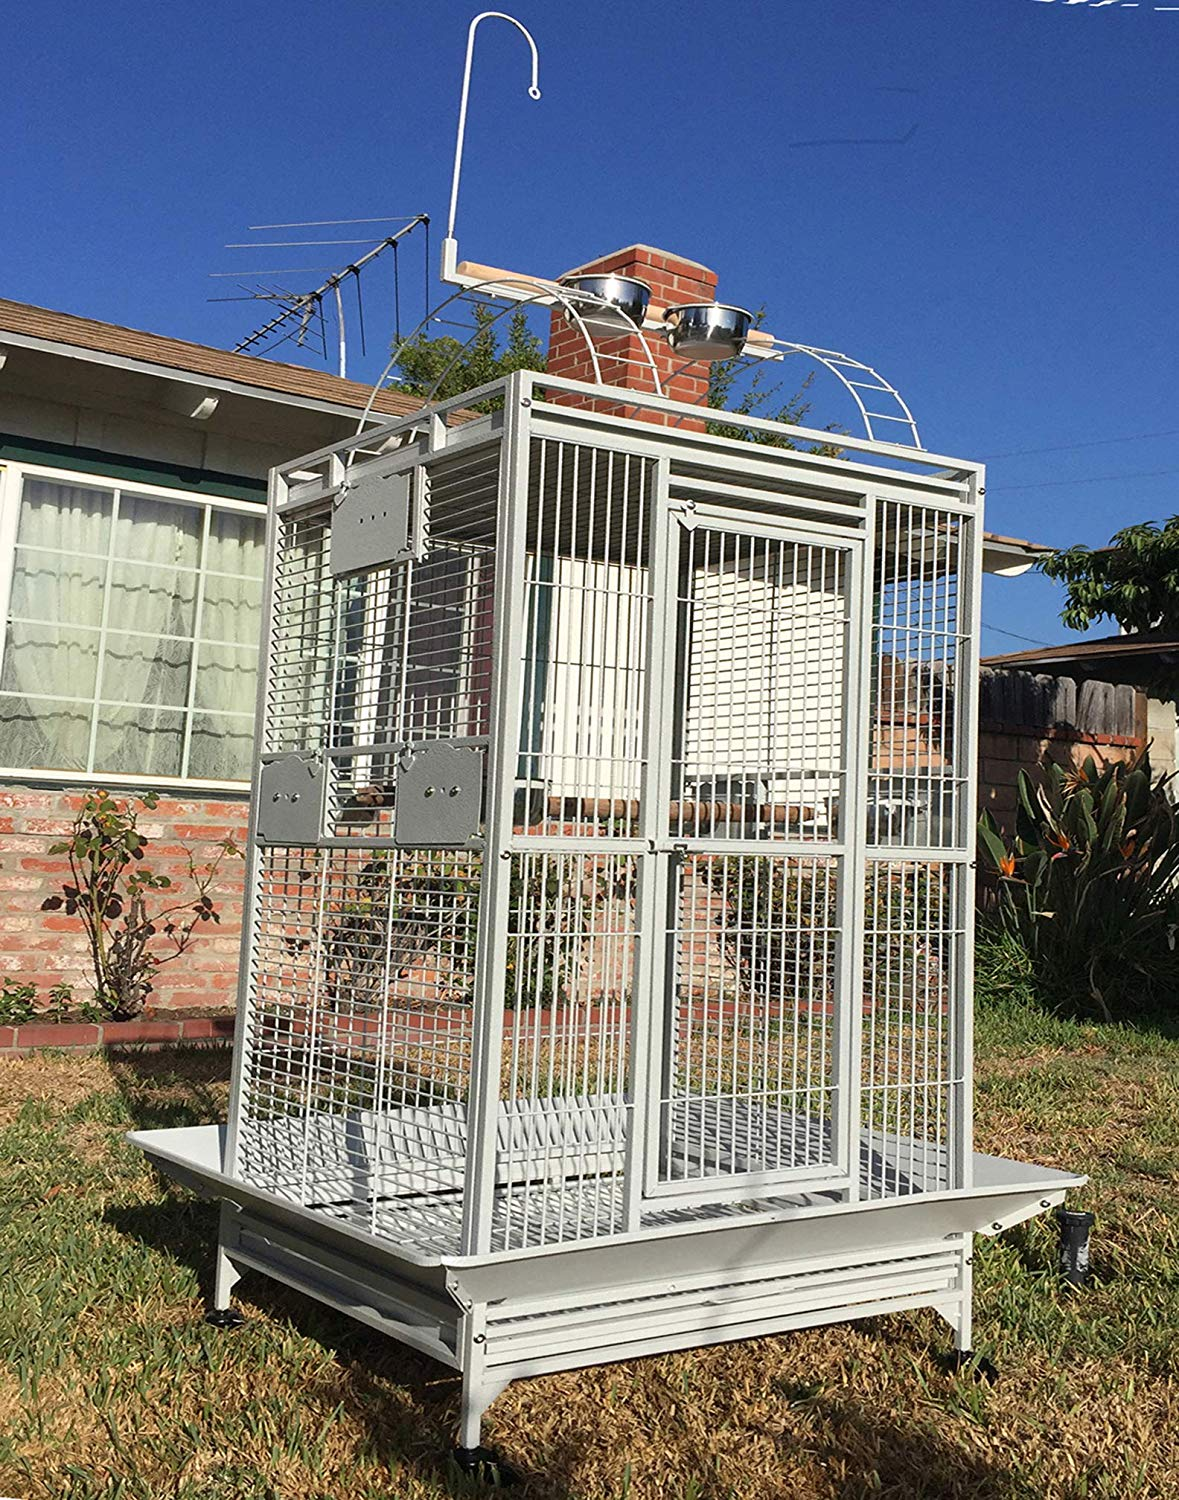 New Large Top Perch Ladder Bird Parrot Finch Macaw Cockatoo Cage